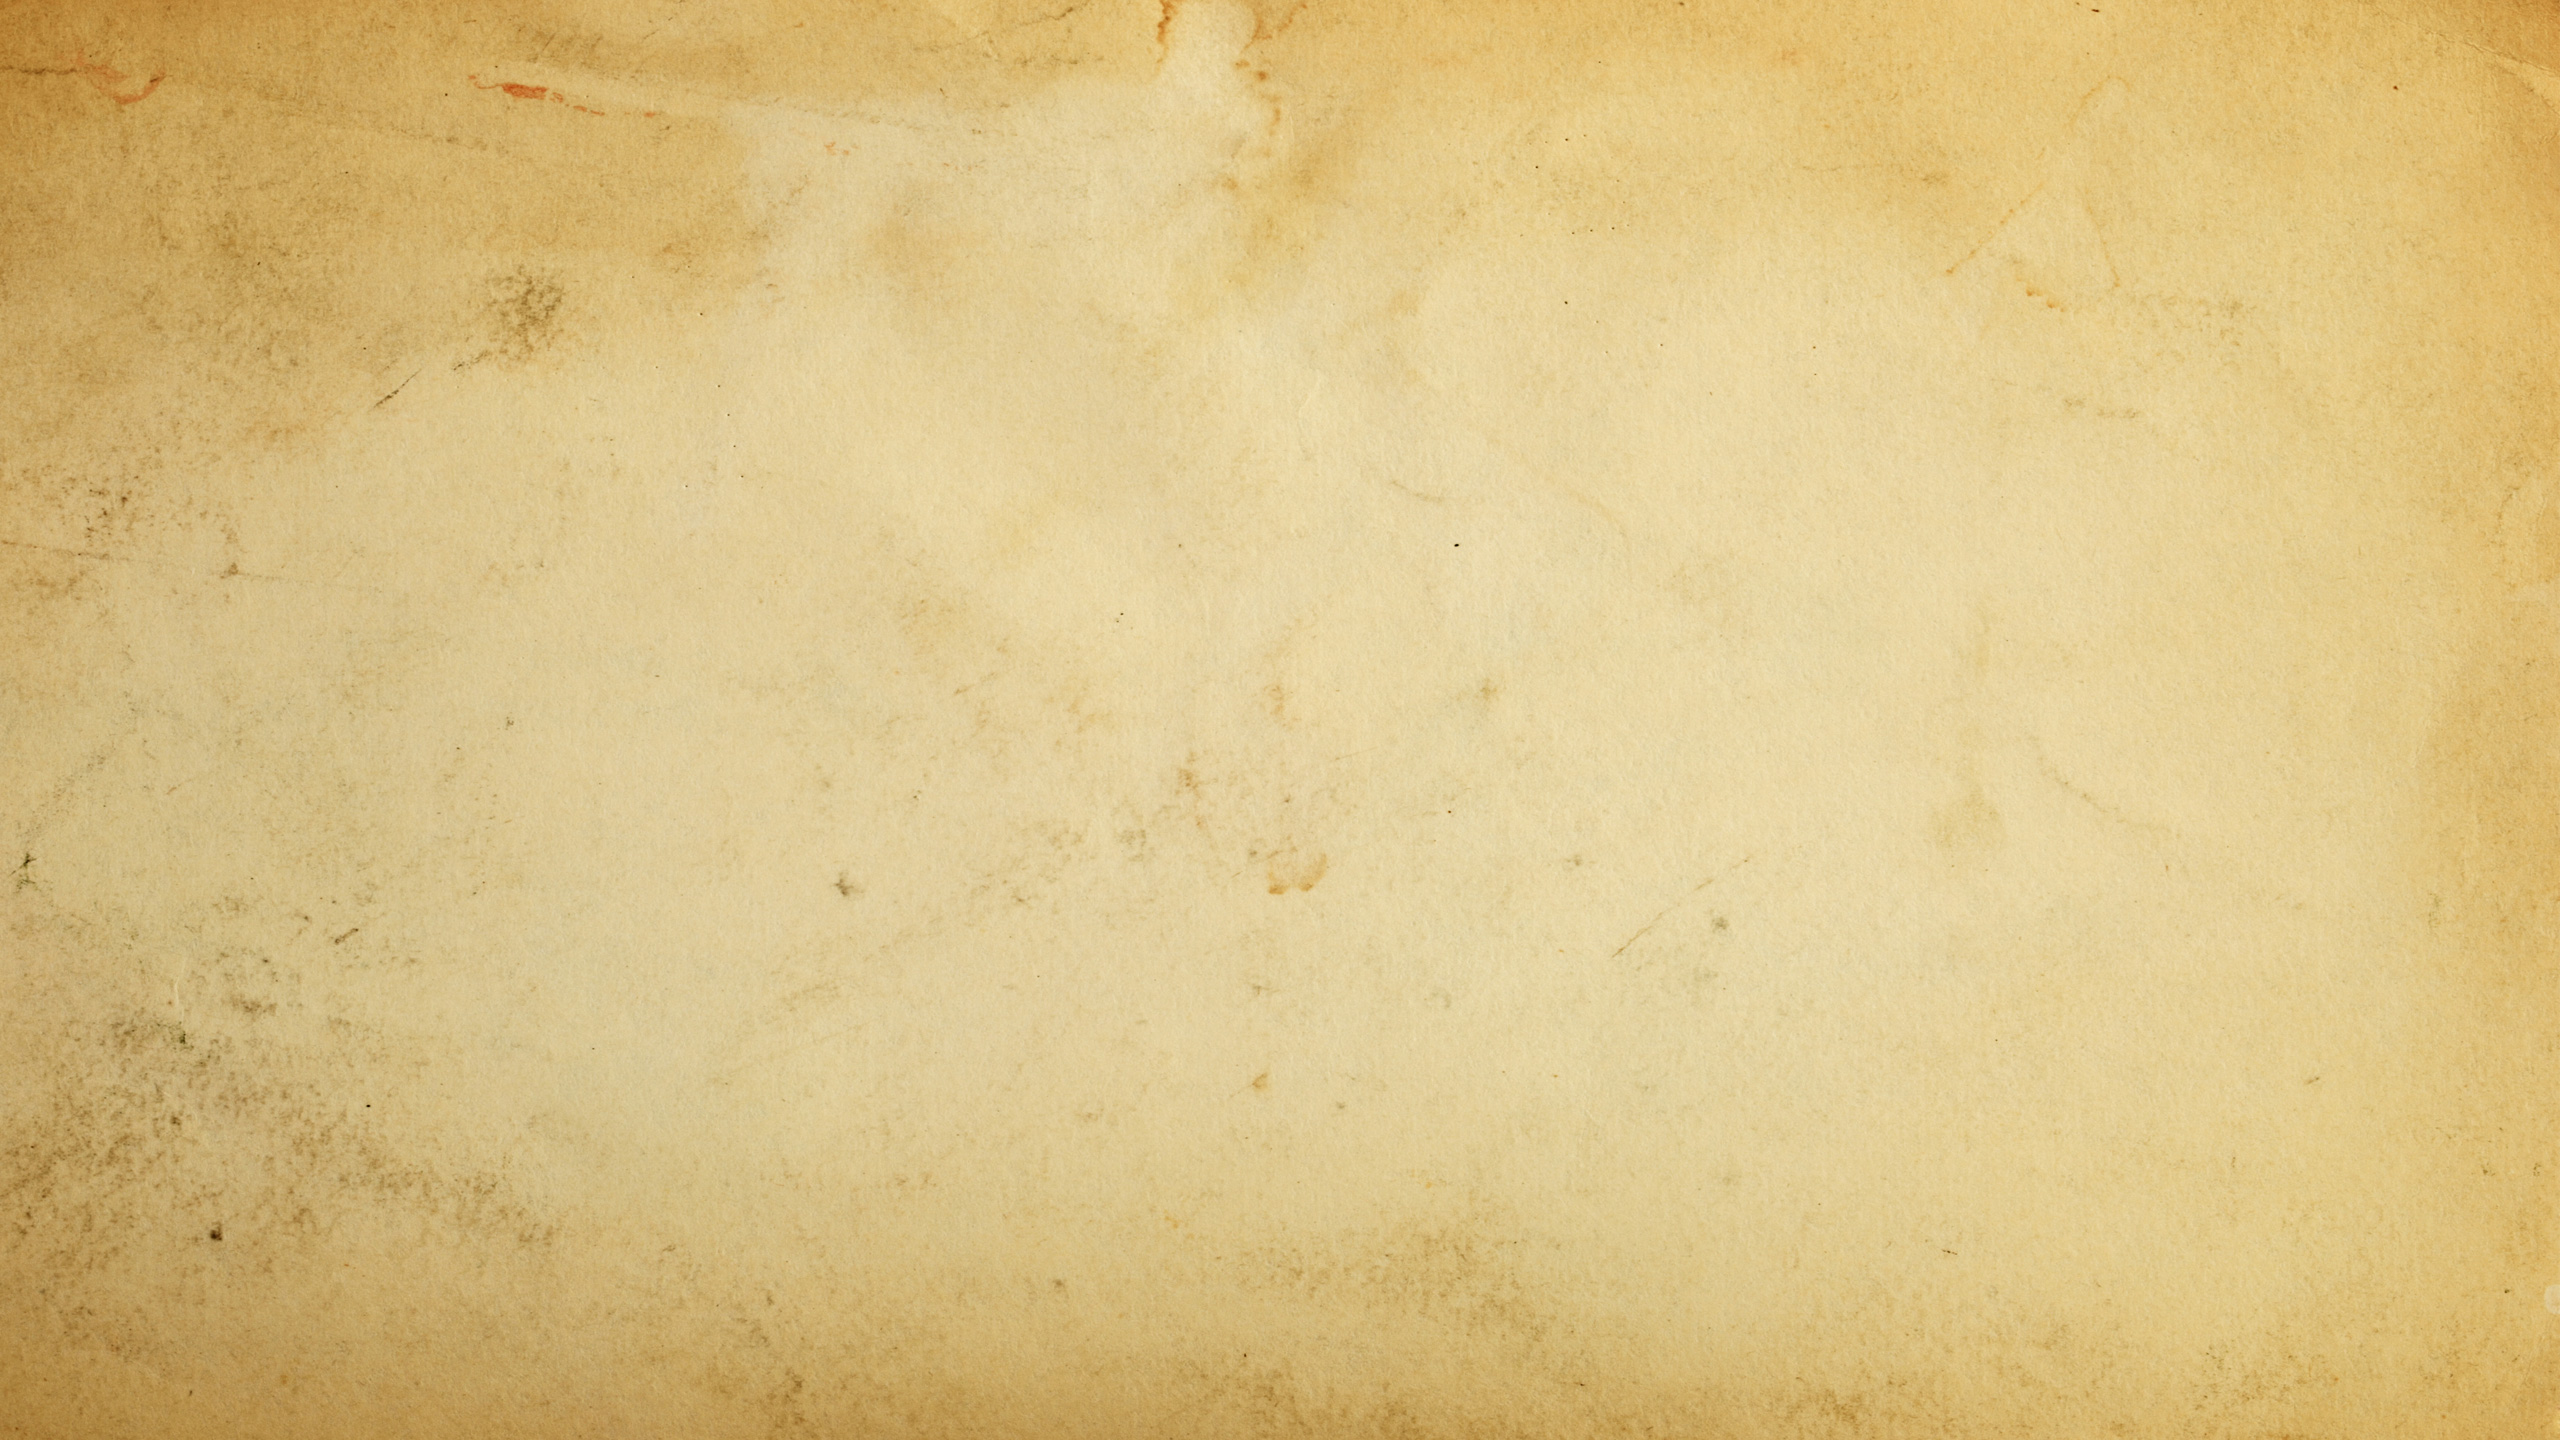 2560x1440 Old Paper Texture Youtube Channel Cover